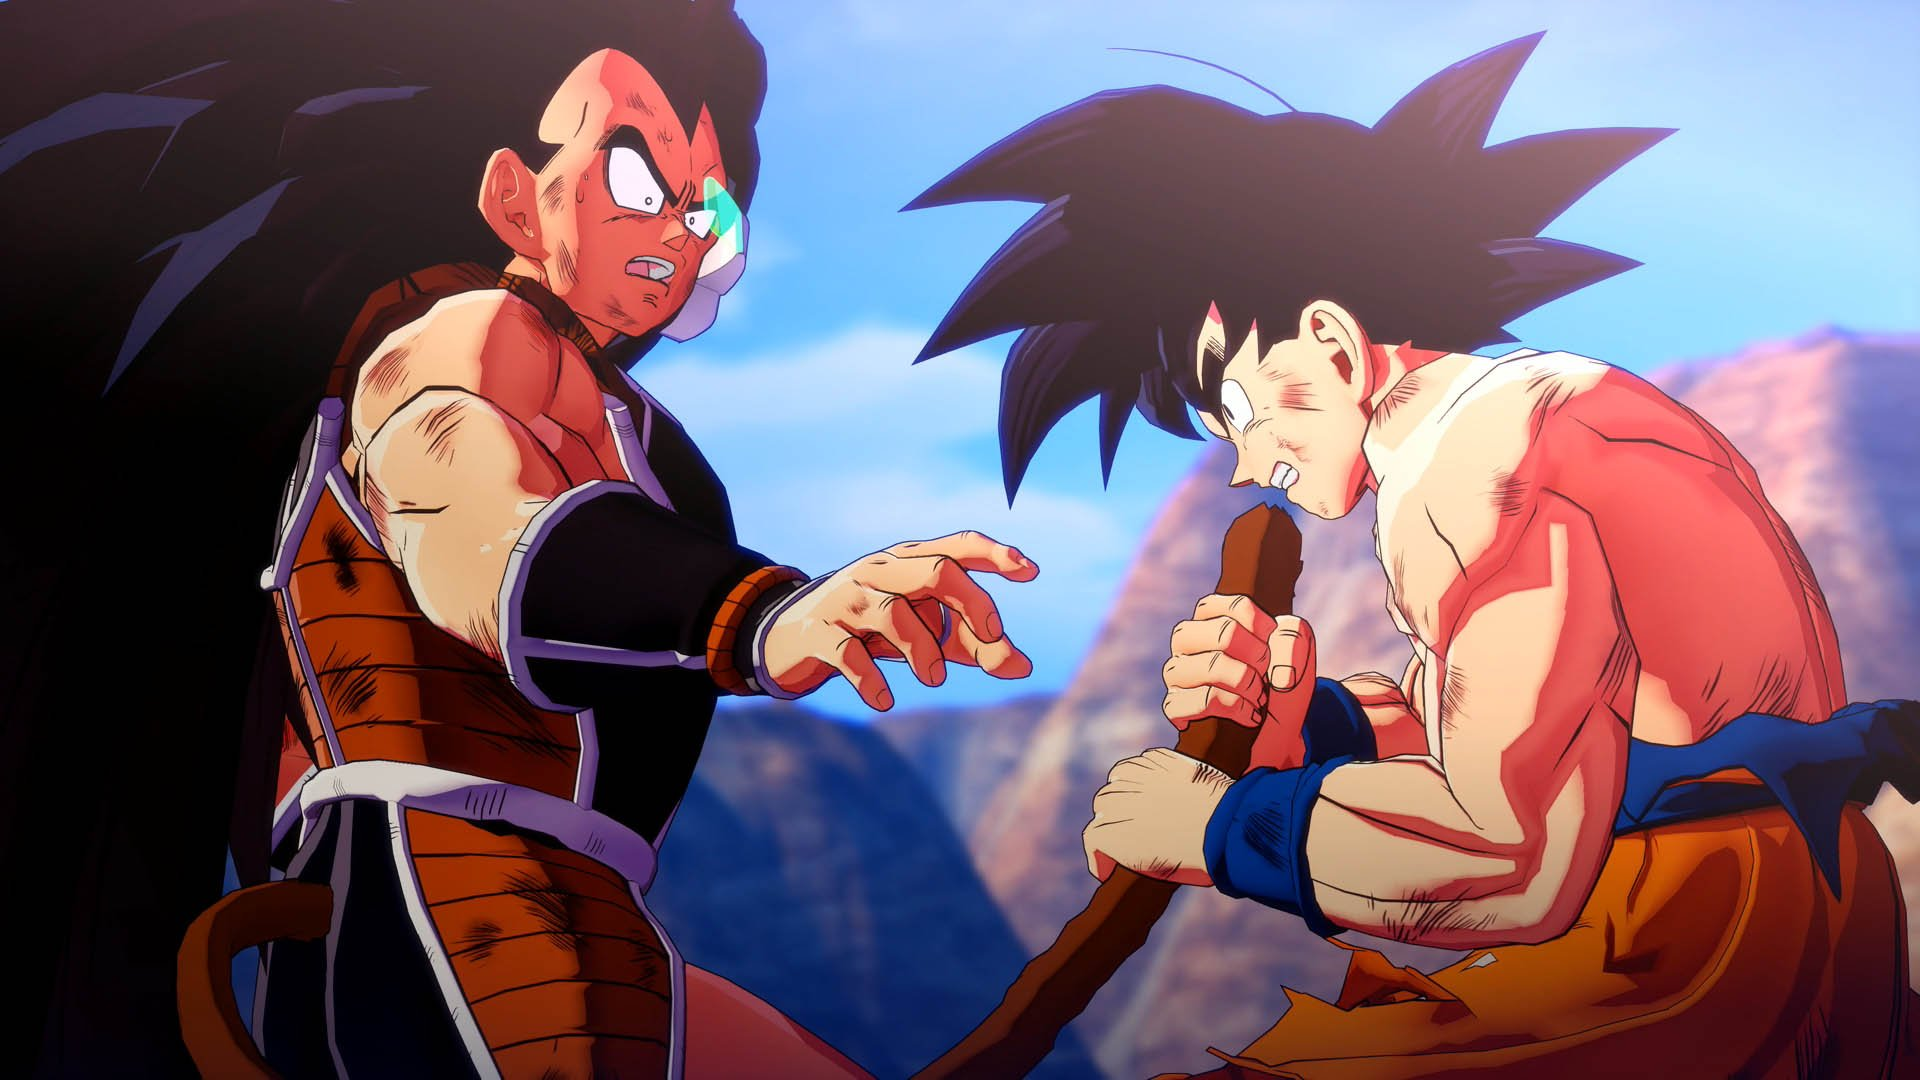 Dragon Ball Z Kakarot Review A Bloated Serving Of More Of The Same